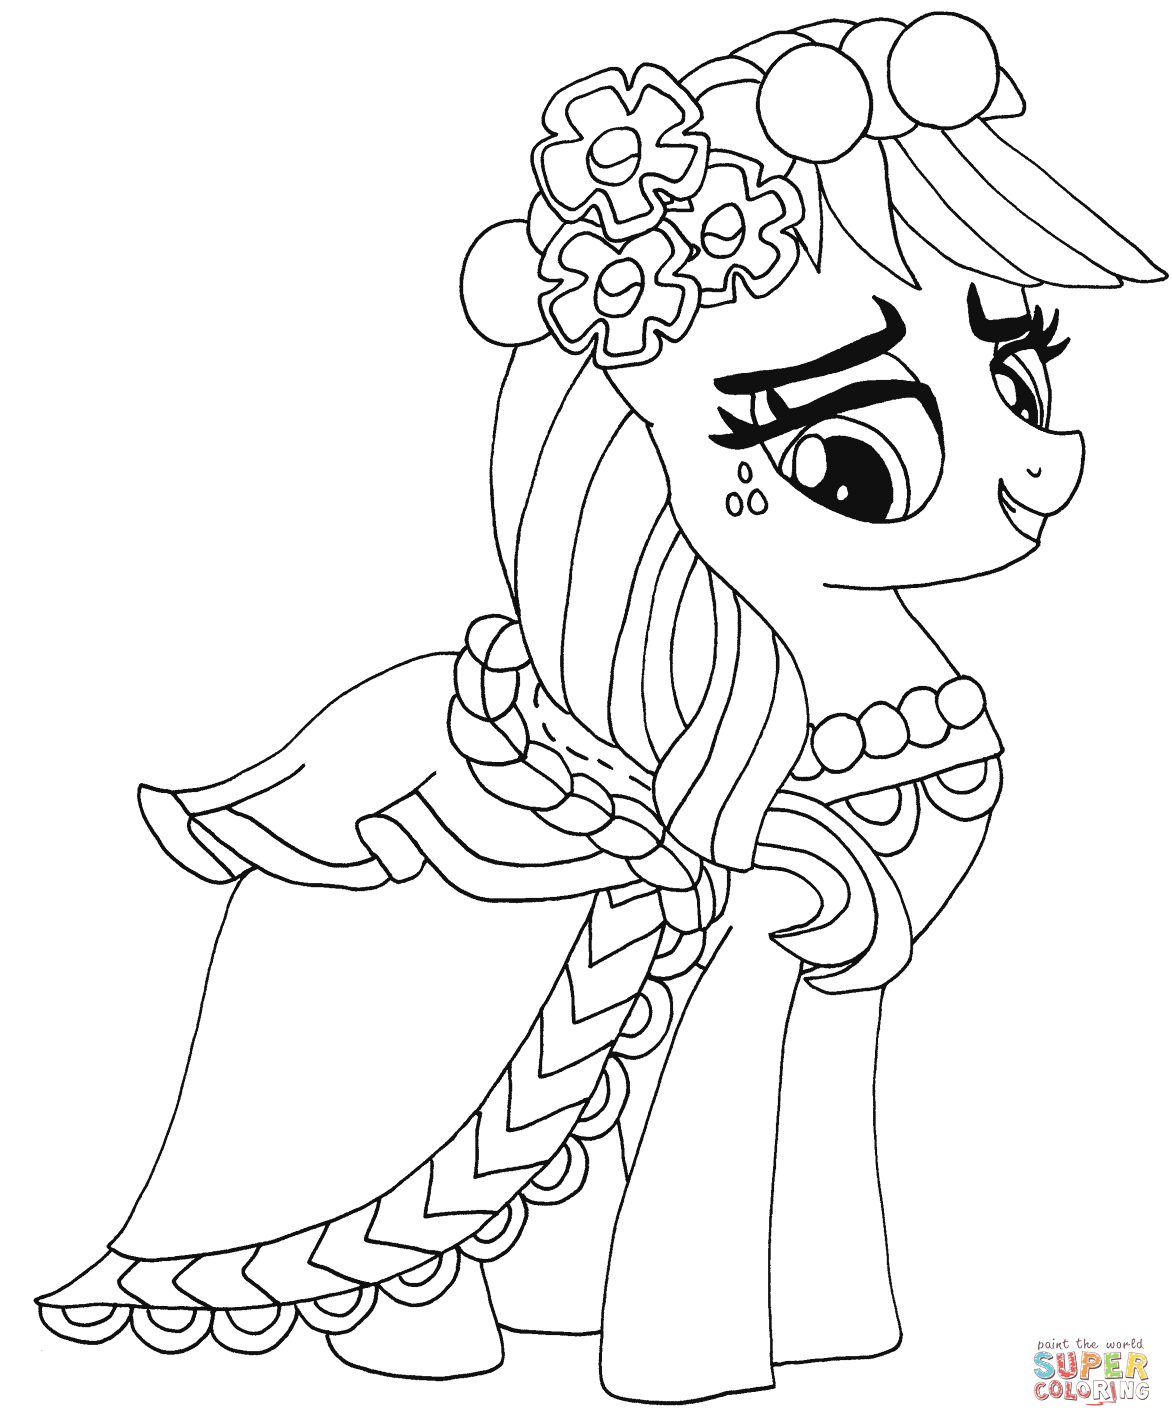 My Little Pony Coloring Pages Google Search : Colorear my little pony para imprimir y